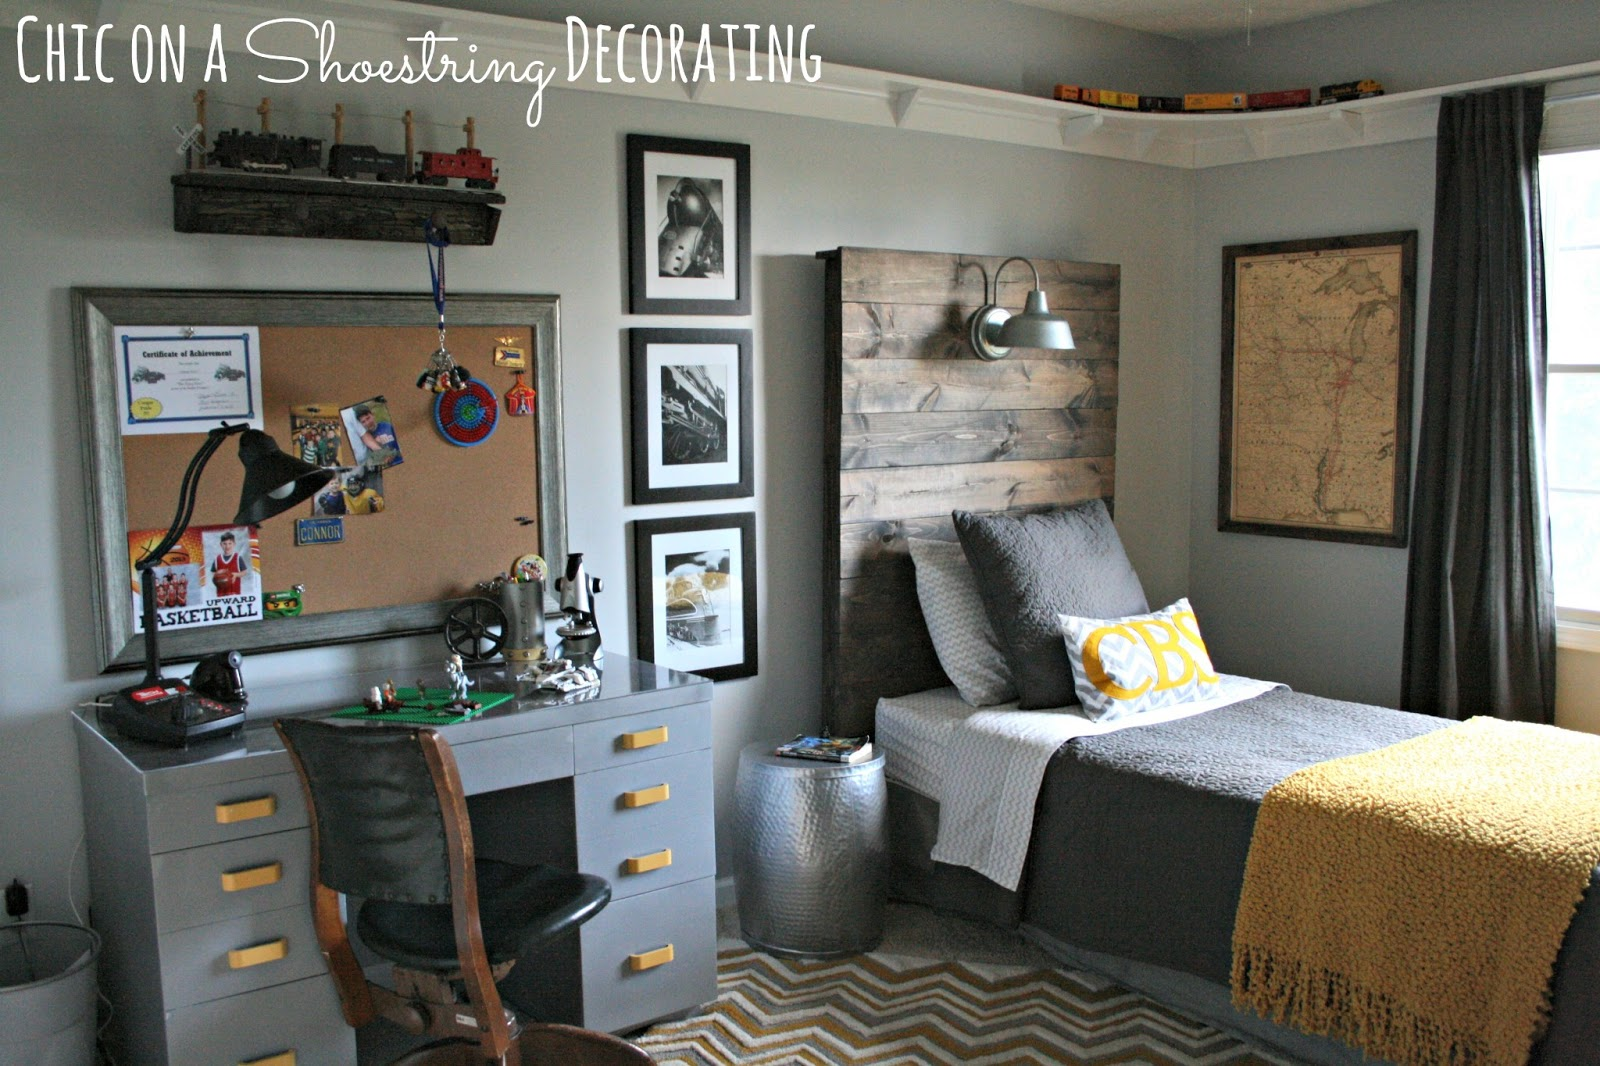 Rooms Decoration For Boys : Chic on a Shoestring Decorating: Bigger Boy Room Reveal